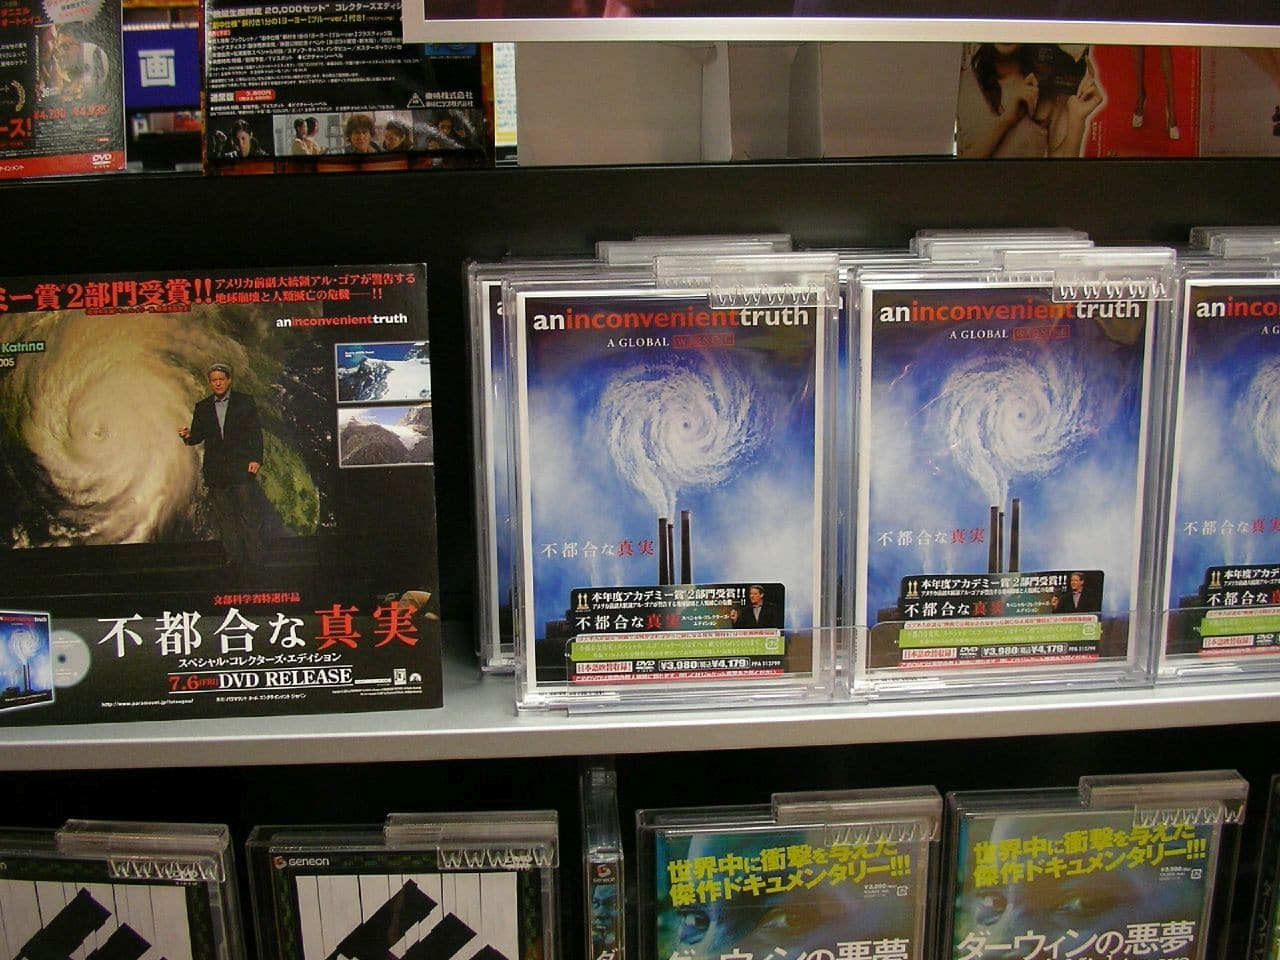 """Al Gore's """"An inconvenient truth"""" on DVD at display in a shop. Photo: Taken on July 7, 2007 by Hajime NAKANO. (CC BY 2.0)."""